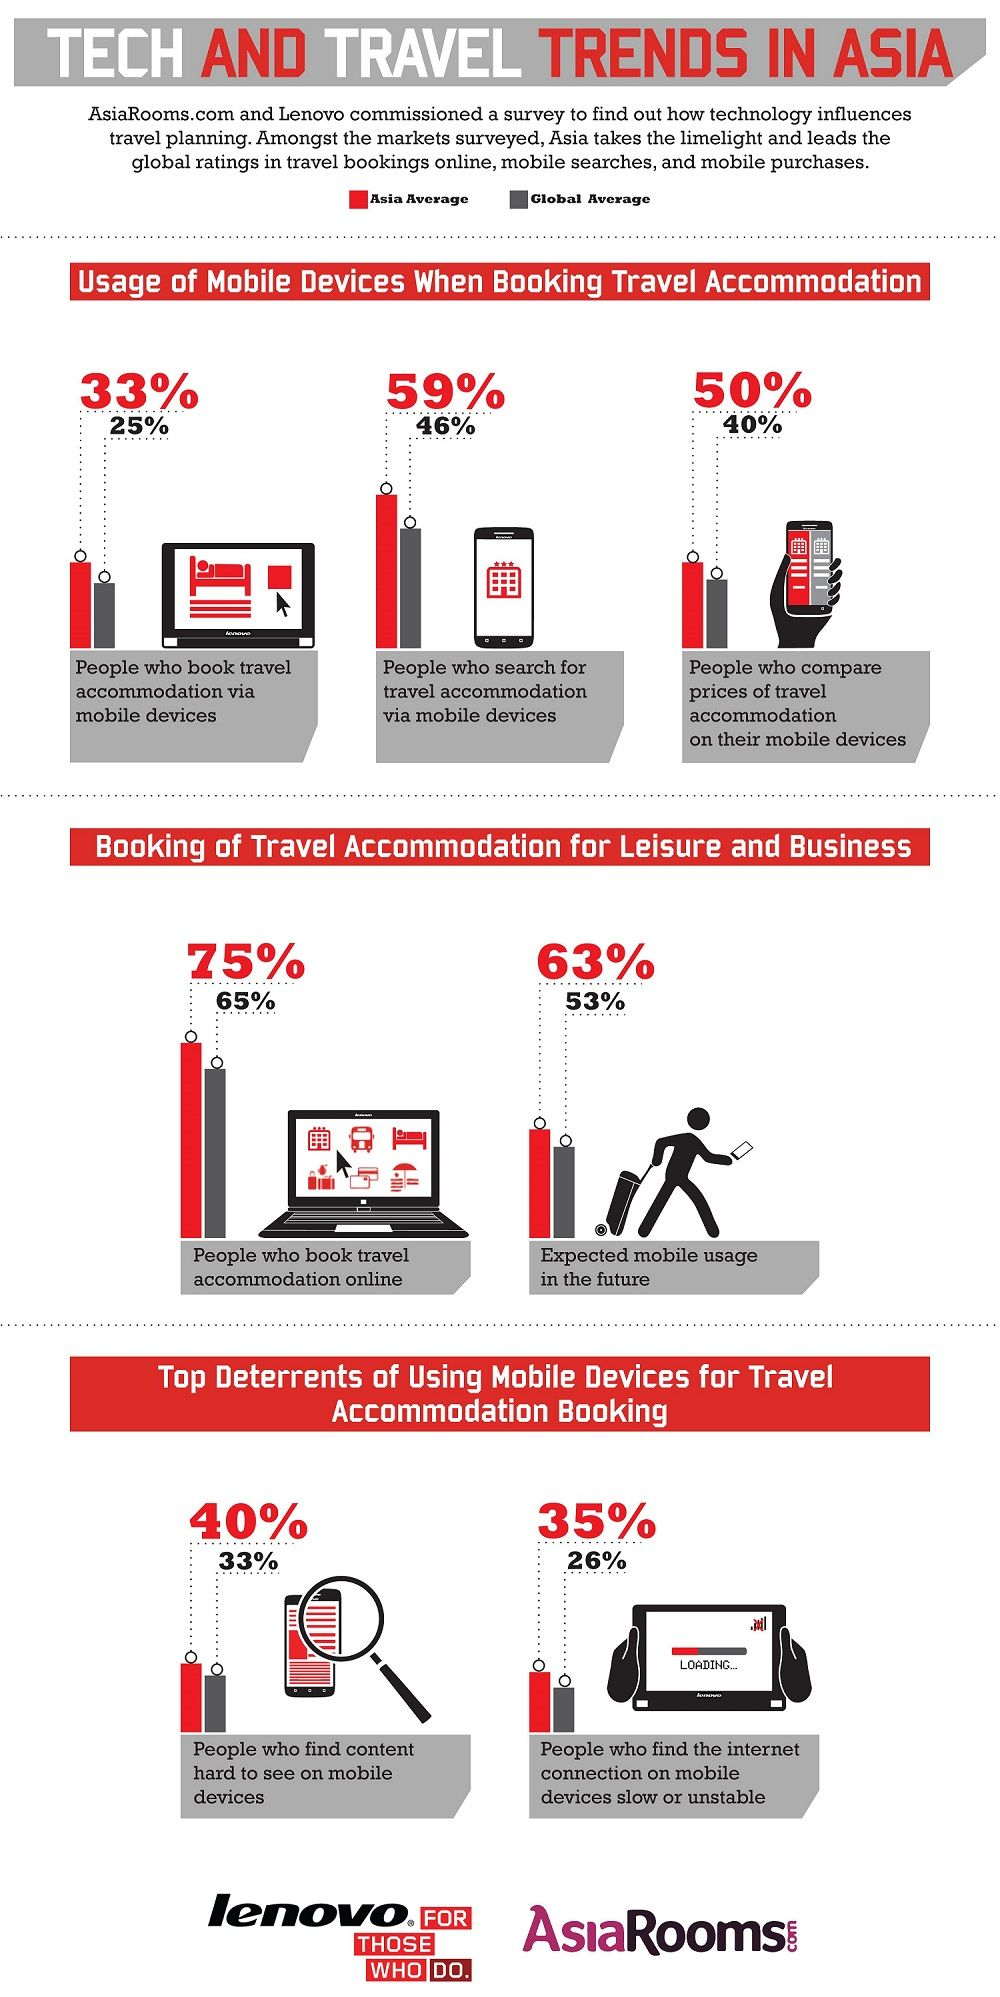 Use of mobile devices in Asia to book travel accommodation (infographic) via @Tnooz